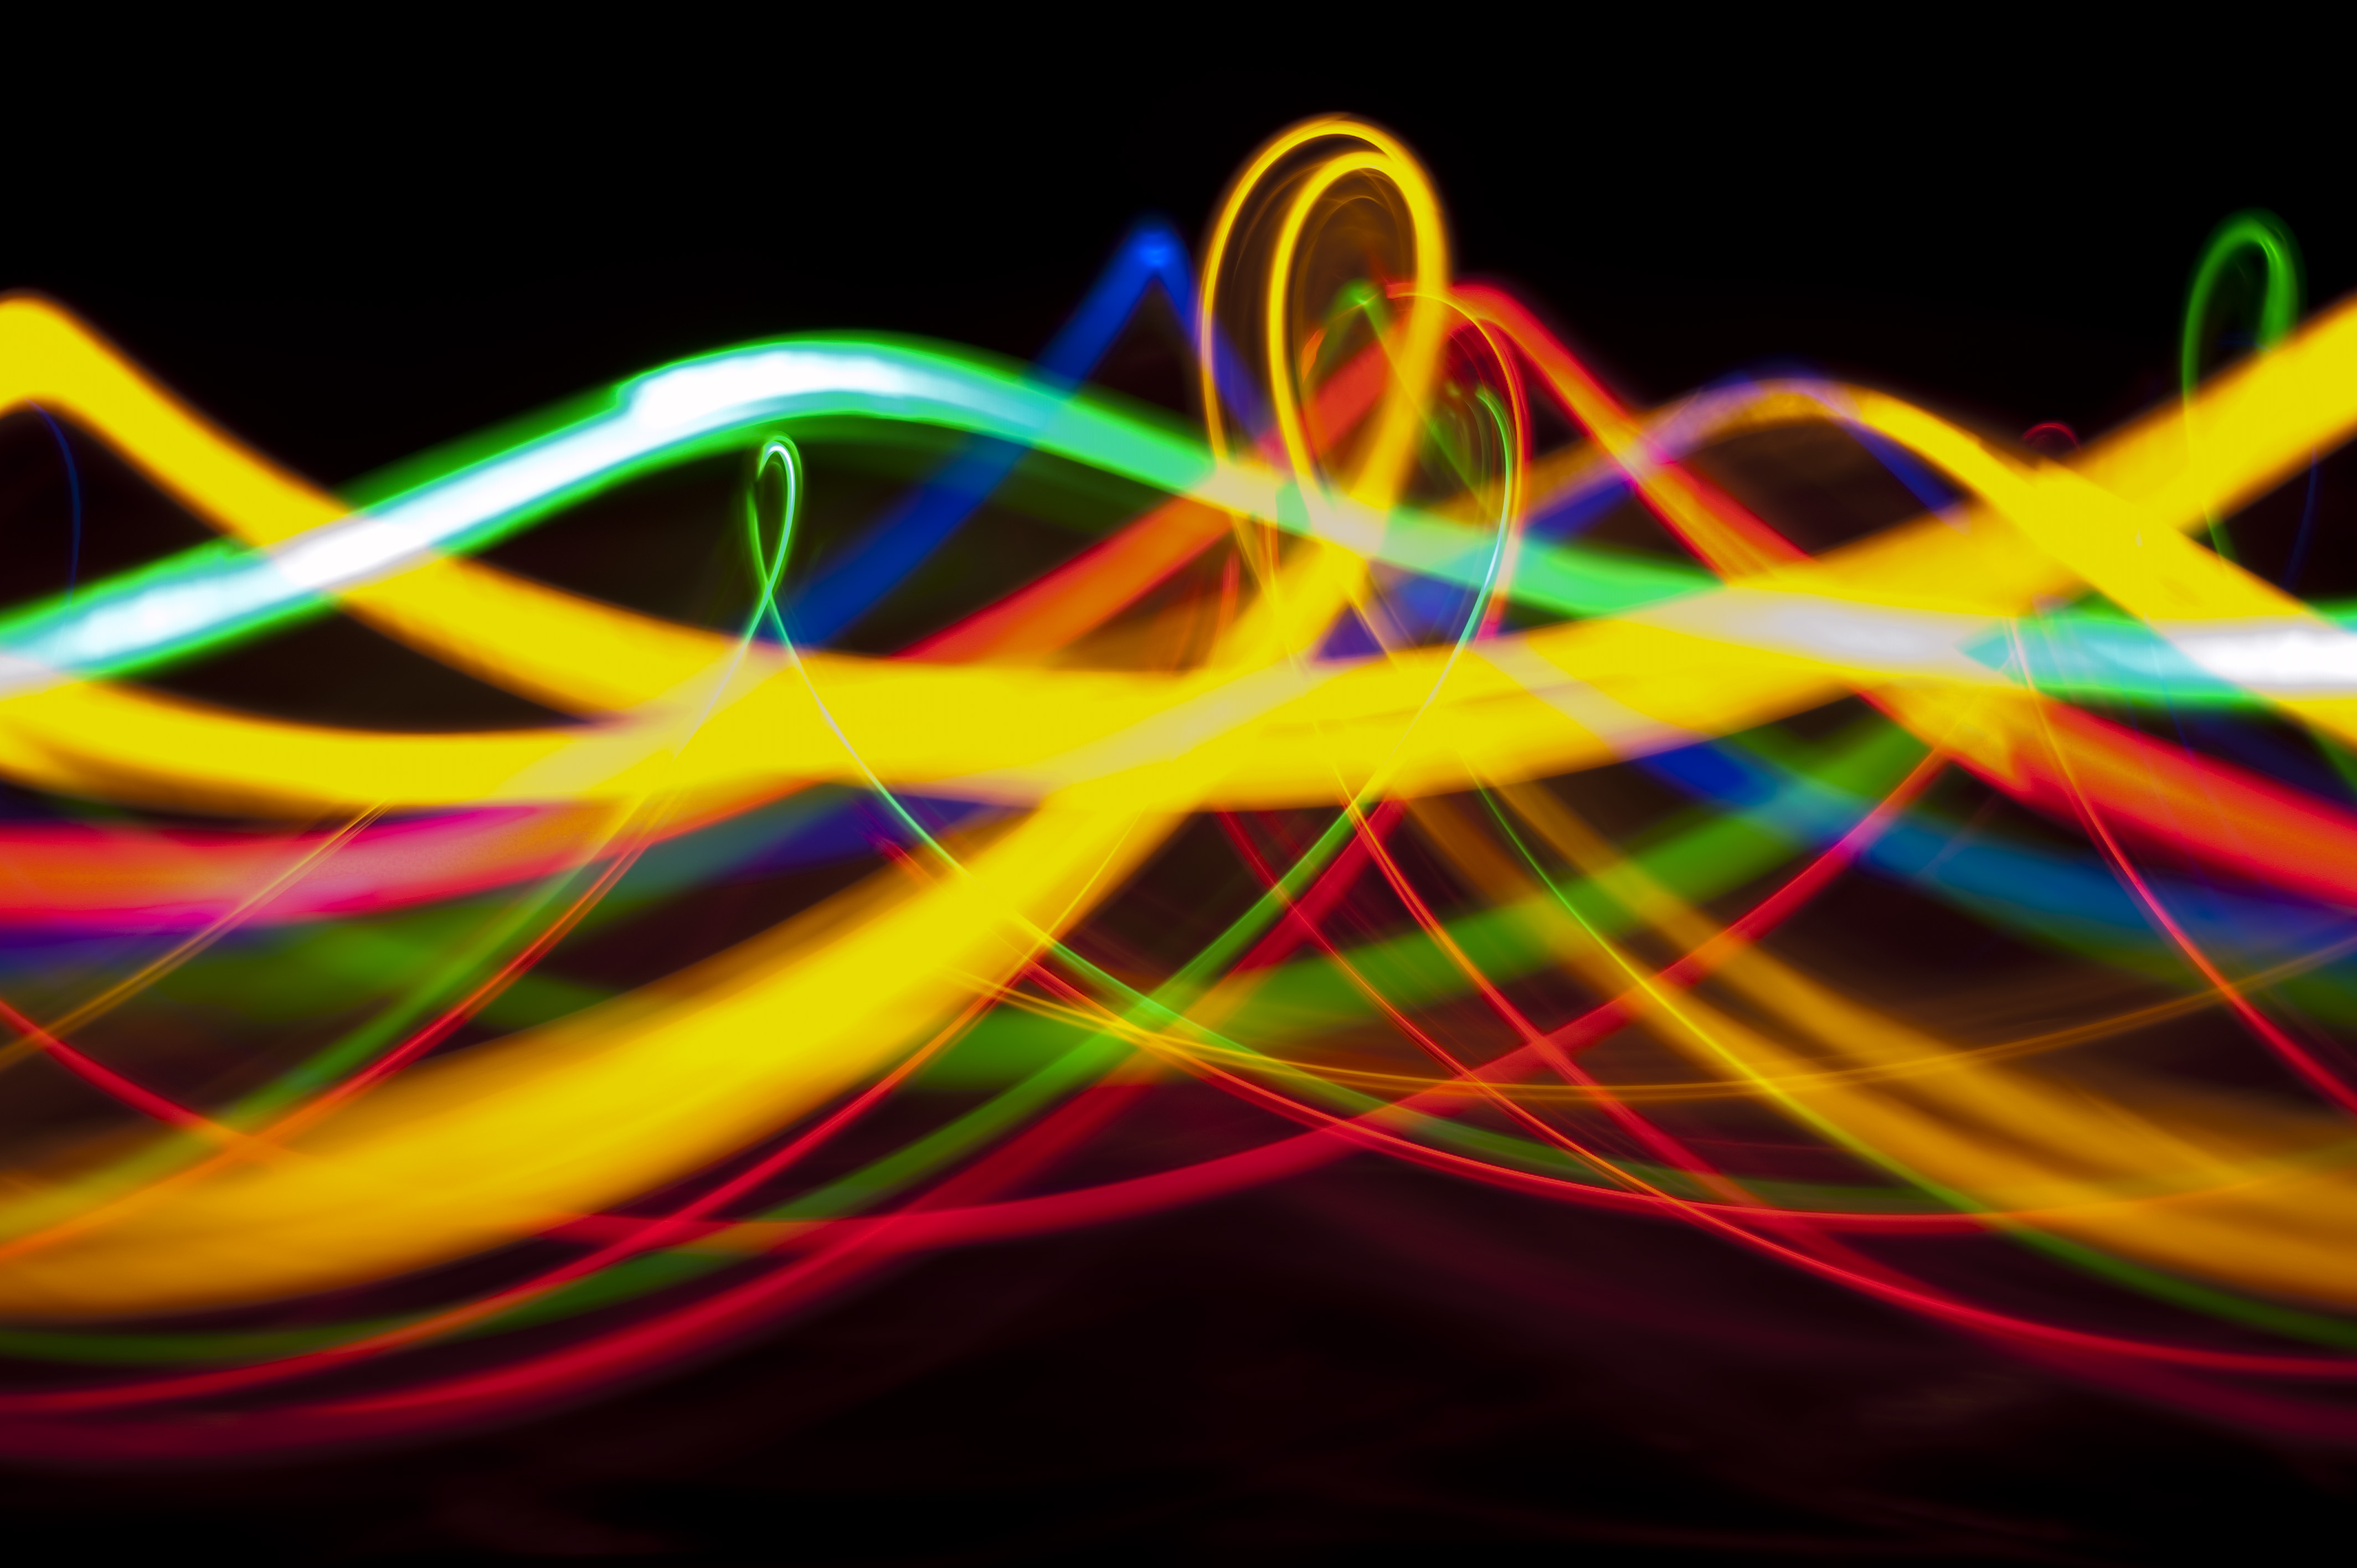 Twisted lights free backgrounds and textures - Vibrant background ...